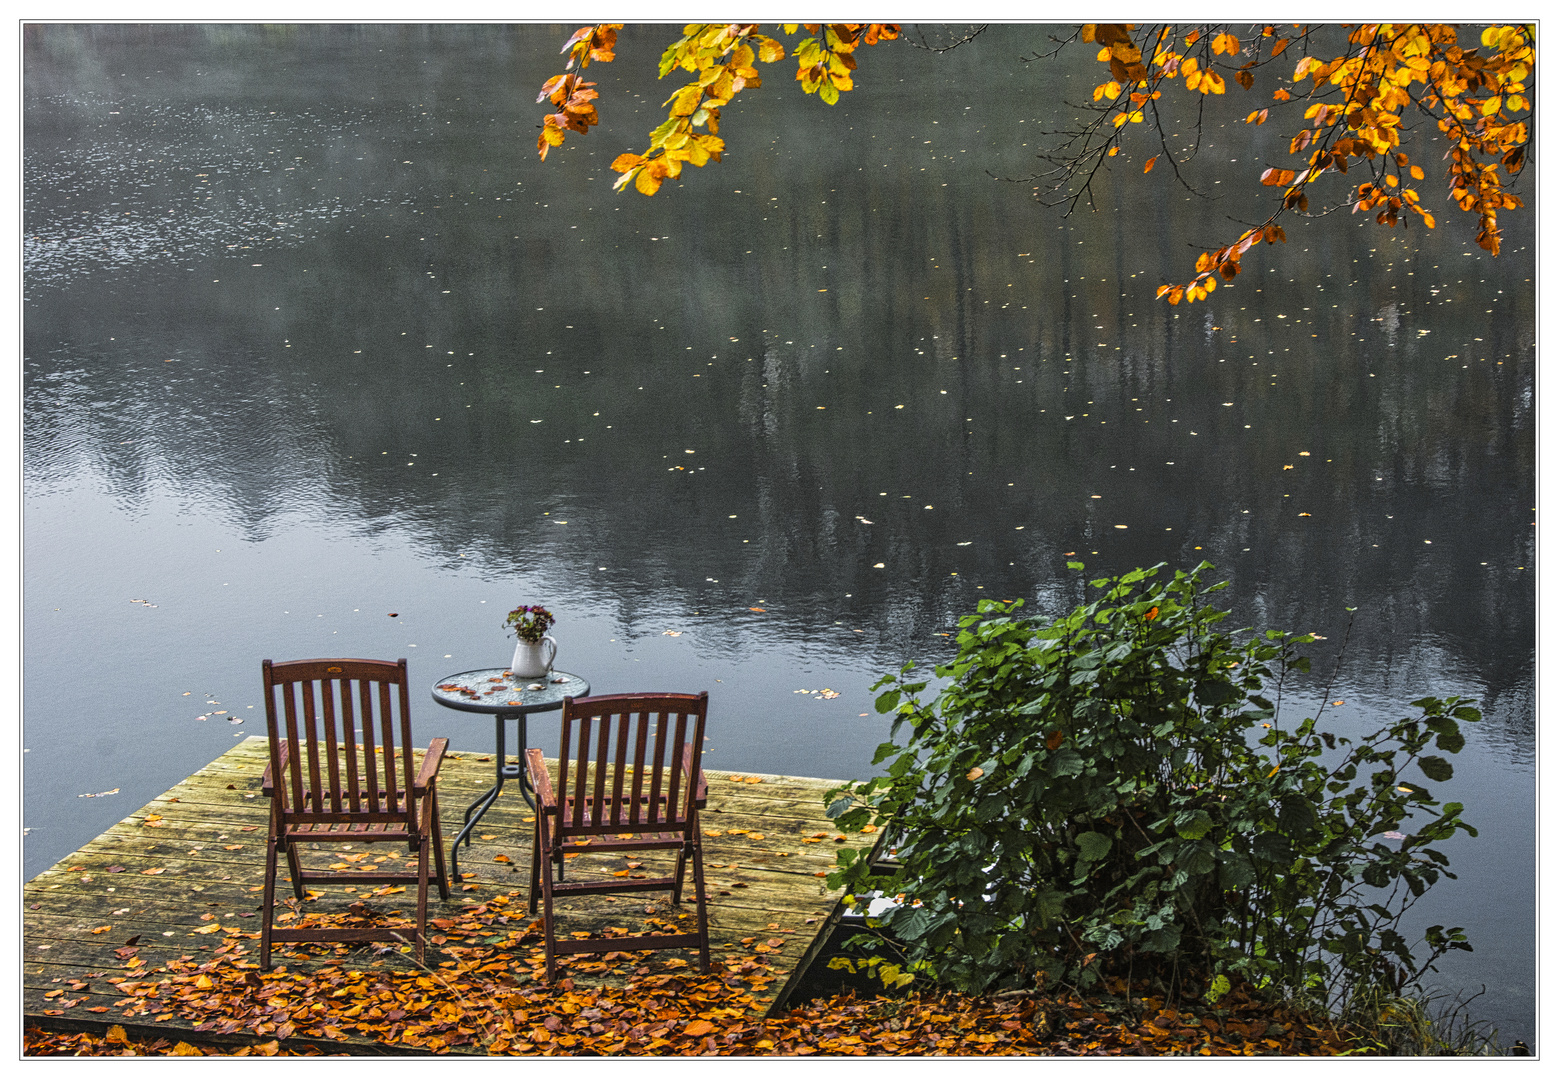 Herbsttag am See